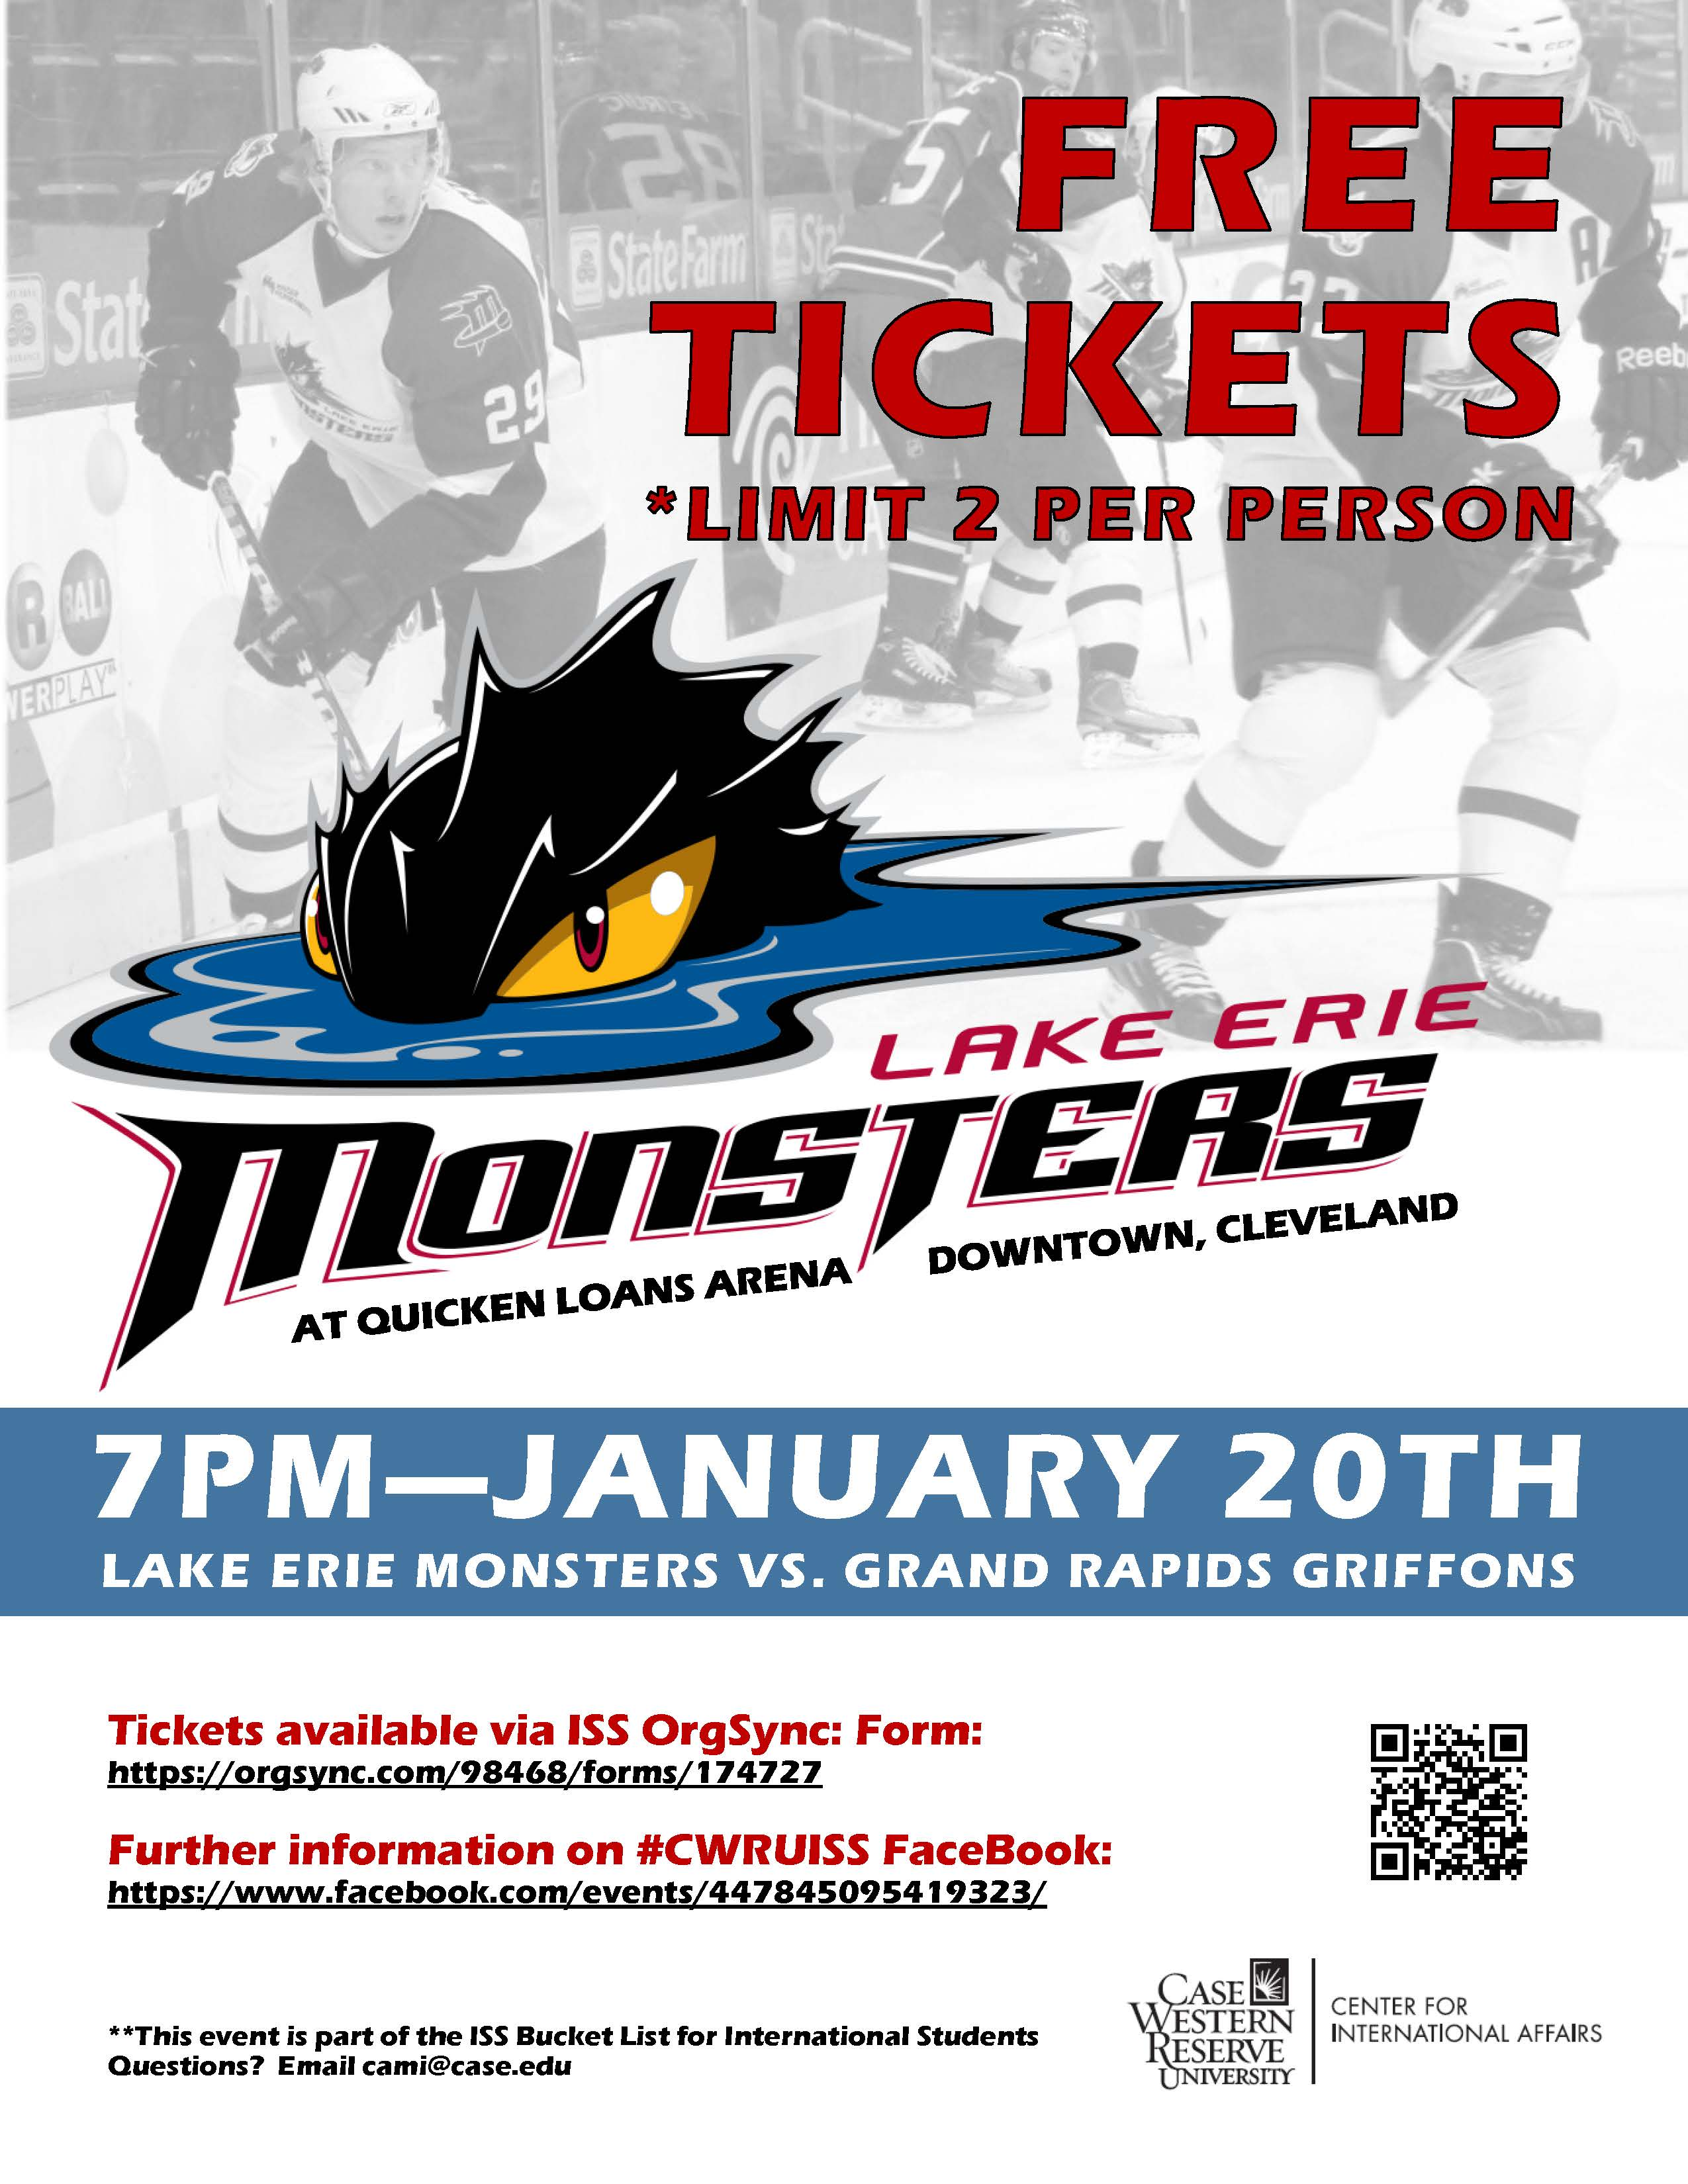 Free Tickets Available For Students To >> Free Tickets Available For Lake Erie Monsters Hockey Game The Daily